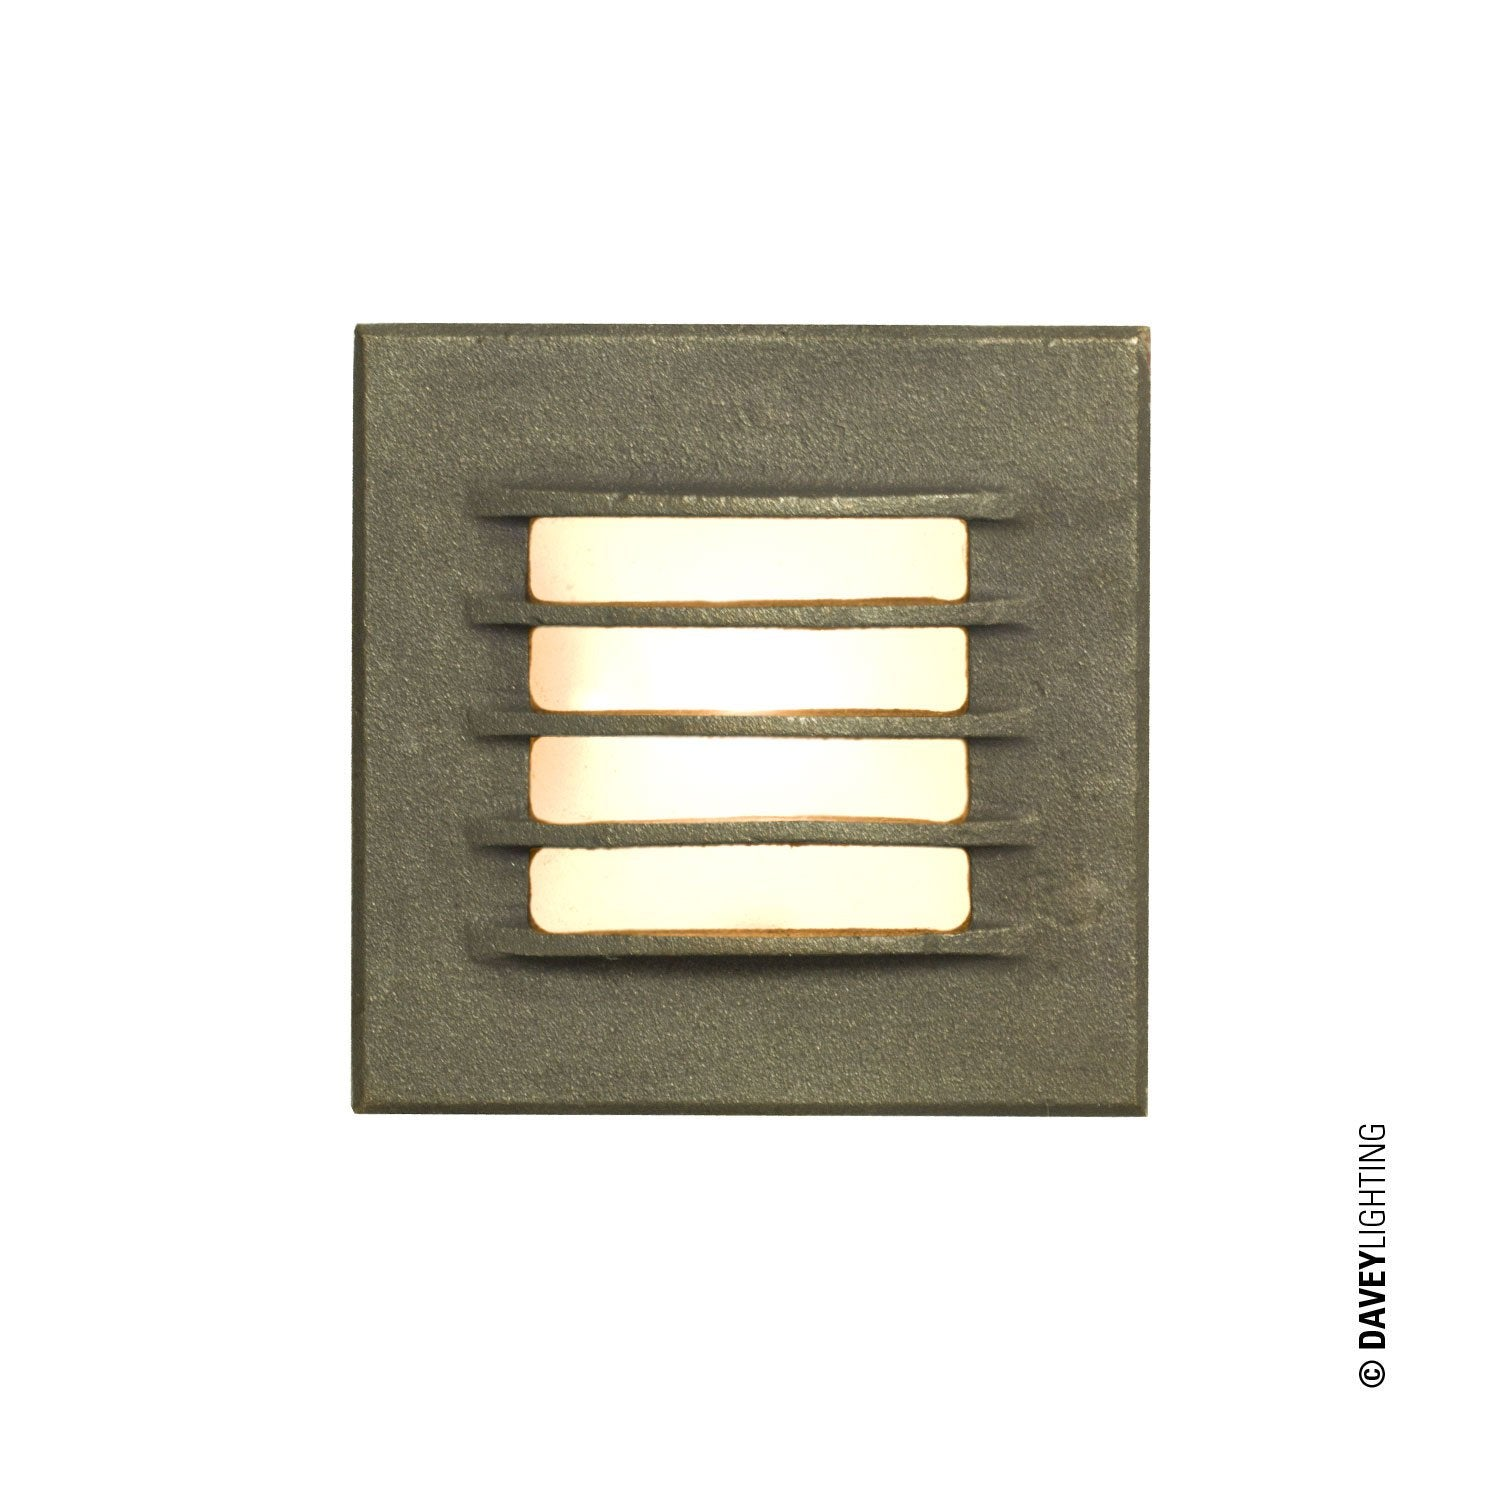 LOW VOLTAGE RECESSED STEP LIGHT, BACK BOX, SANDBLASTED BRONZE